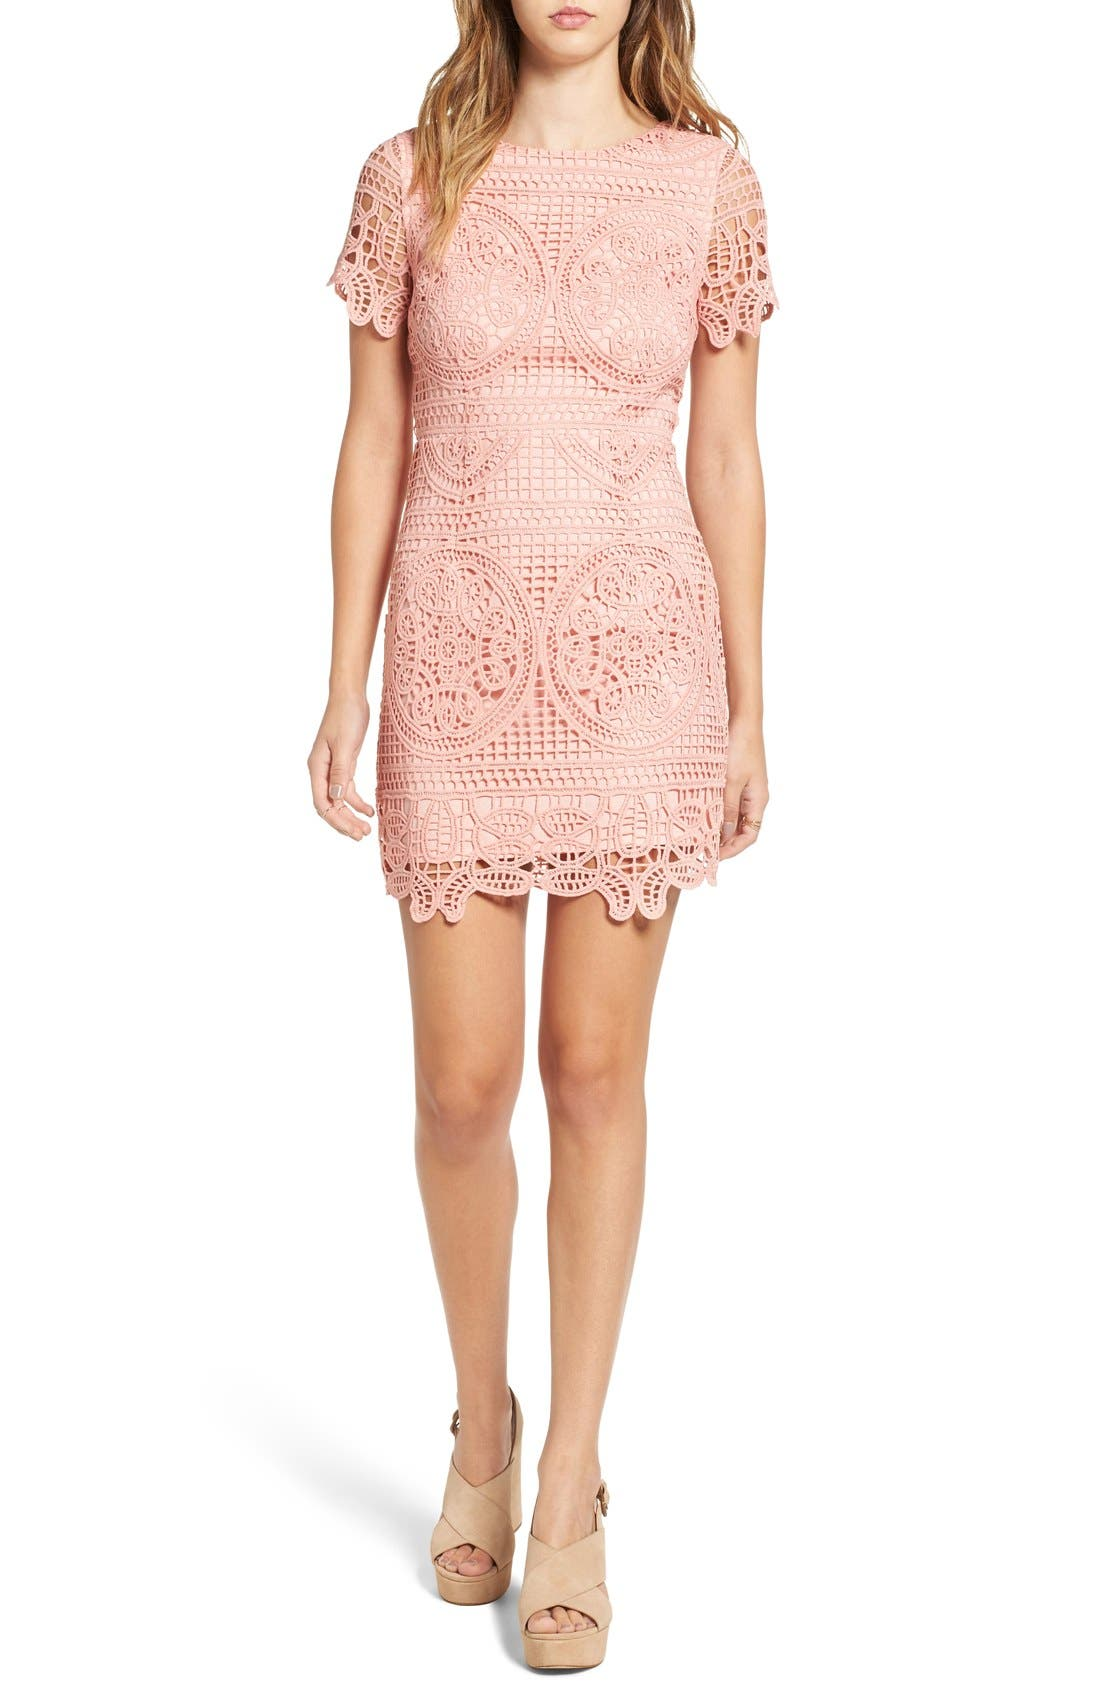 Alternate Image 1 Selected - J.O.A. Crochet Lace Sheath Dress